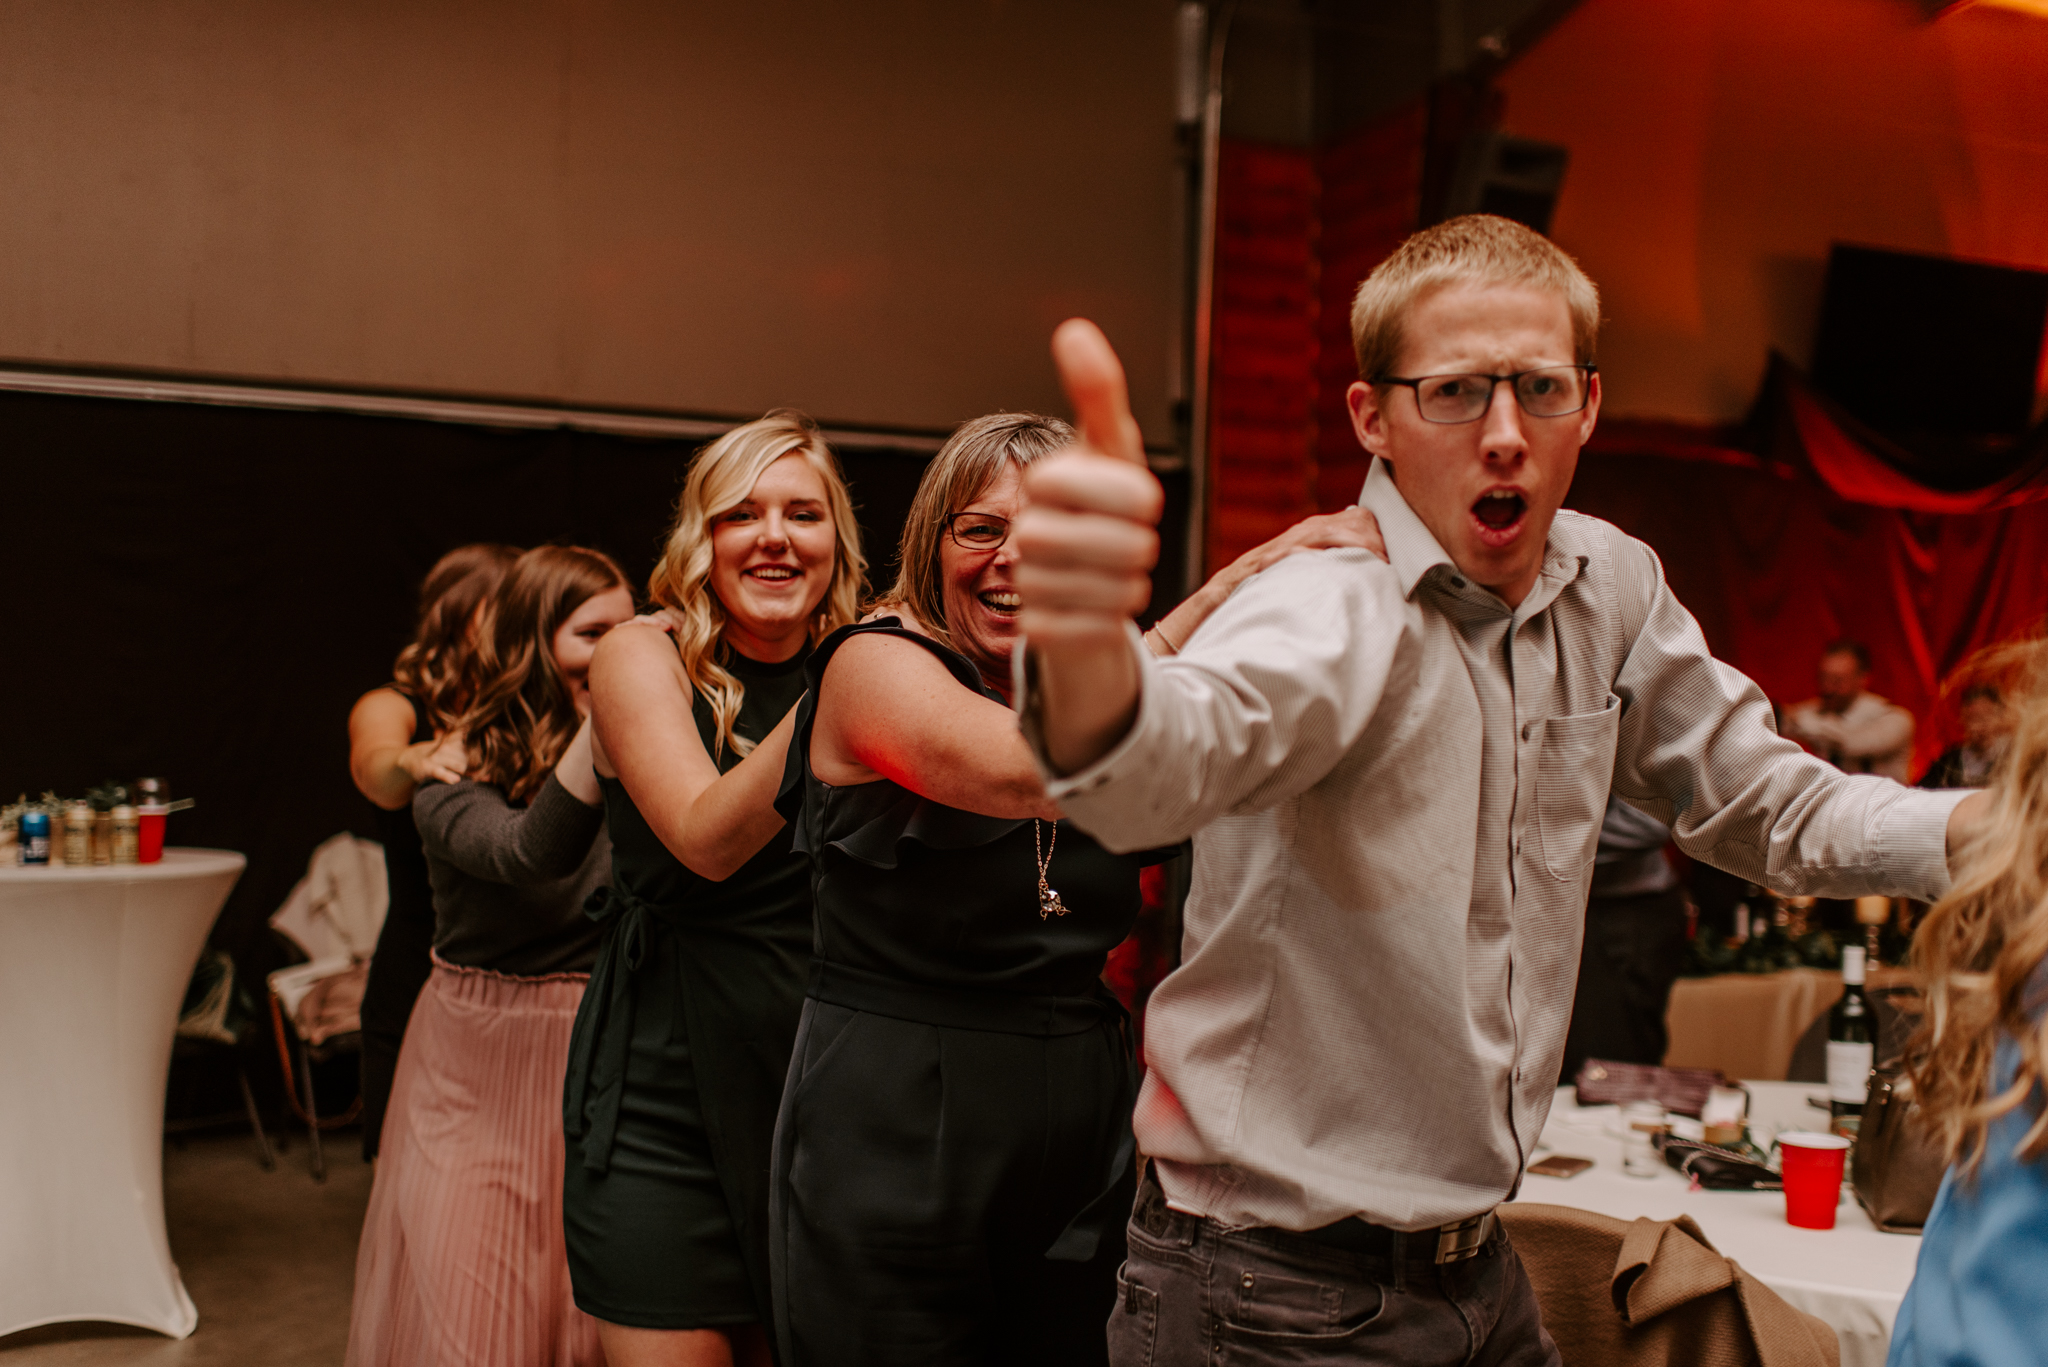 How to get guests on the dance floor